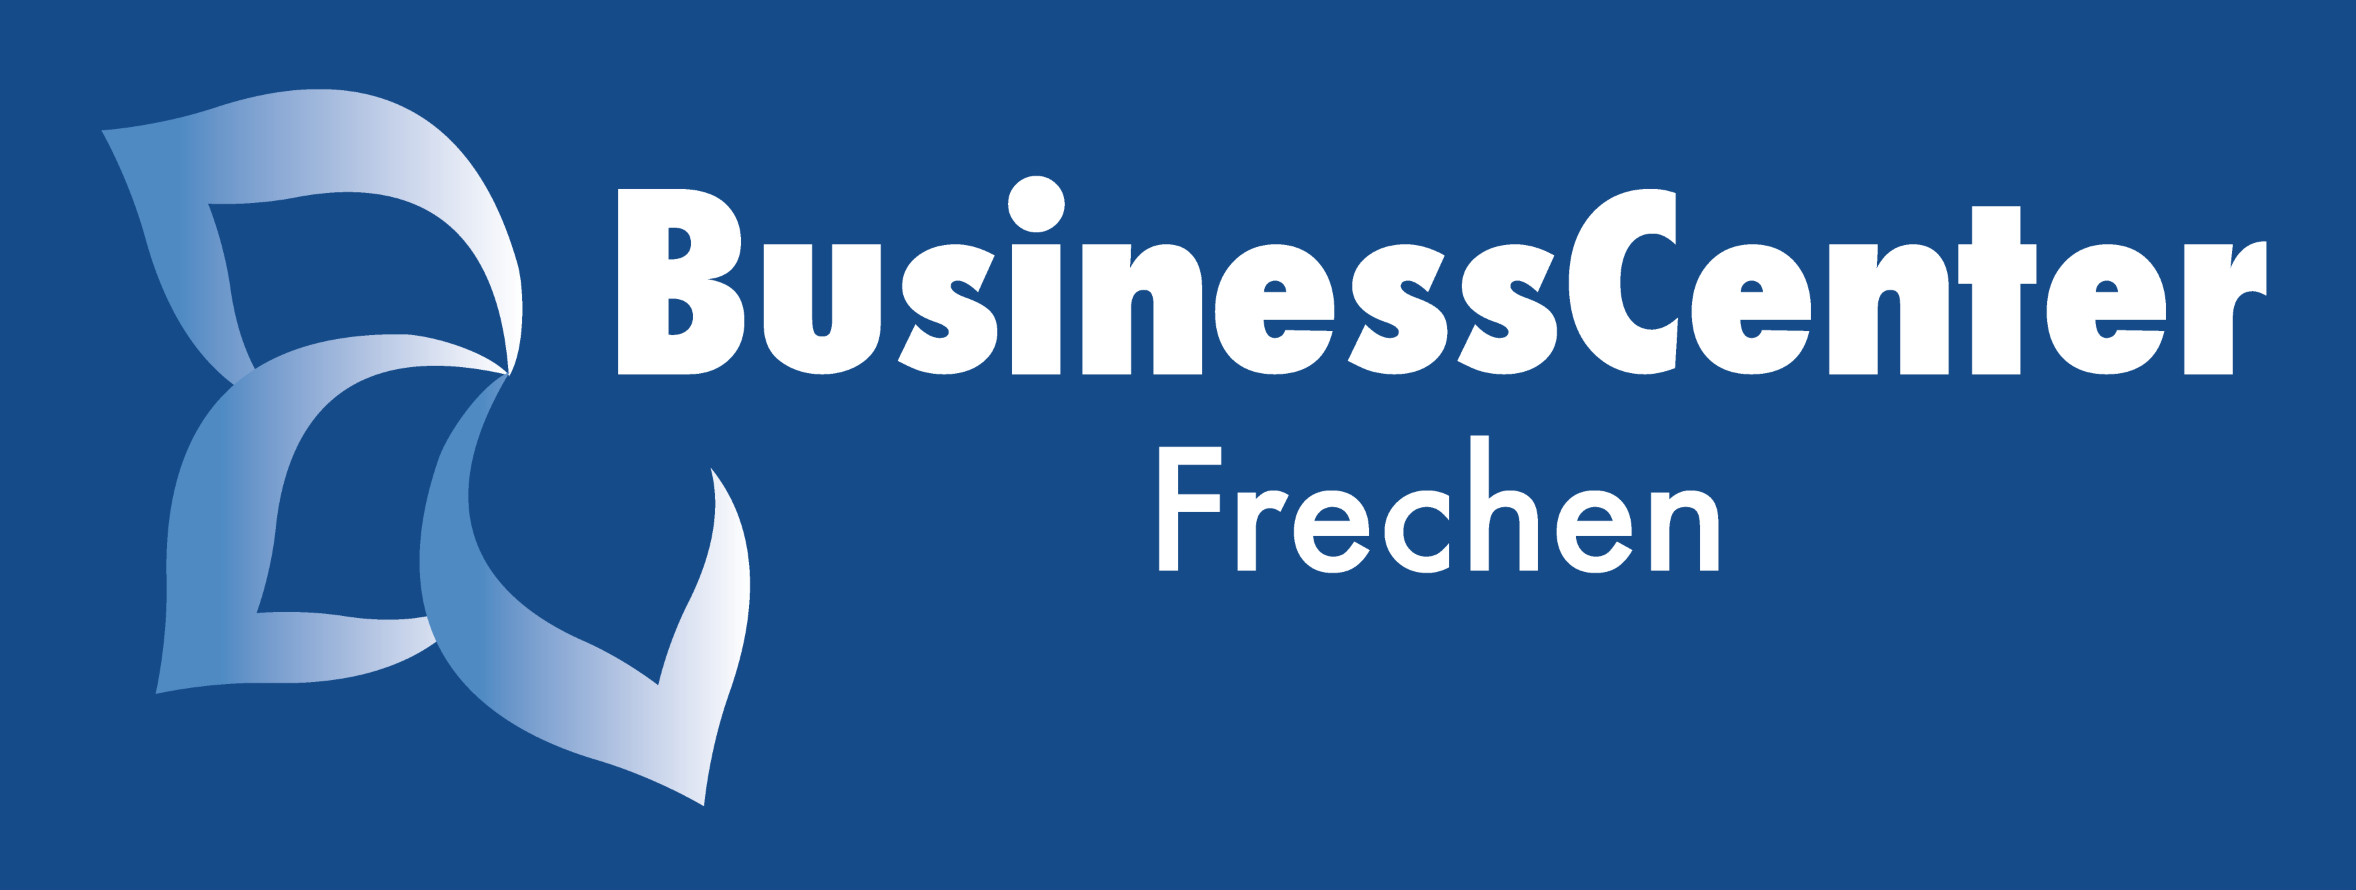 businesscenter-frechen.de